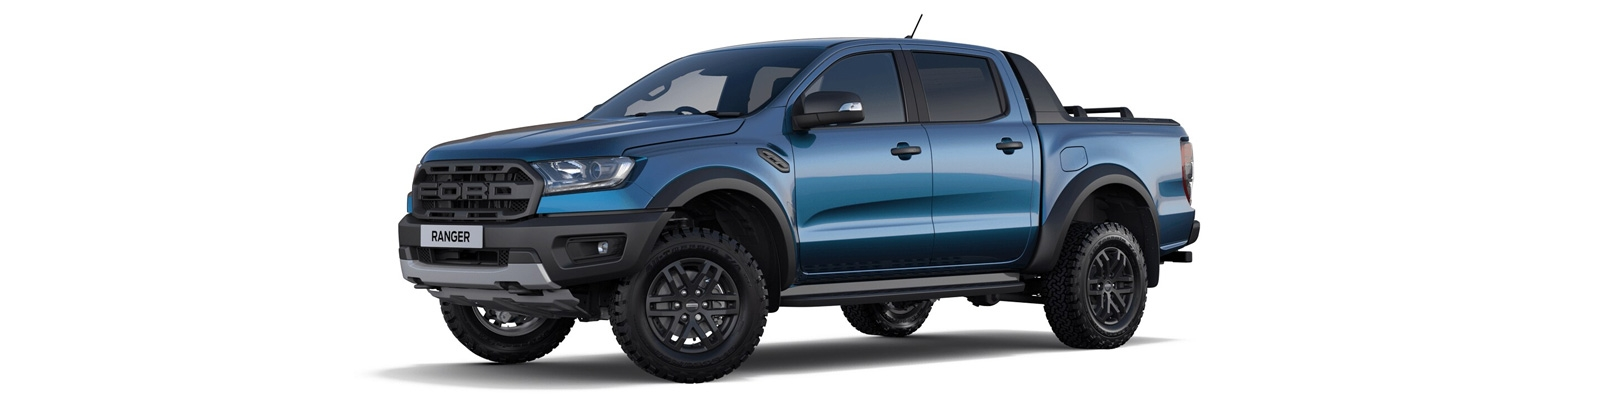 Accessories For Ford Ranger Raptor Double Cab 2019 On